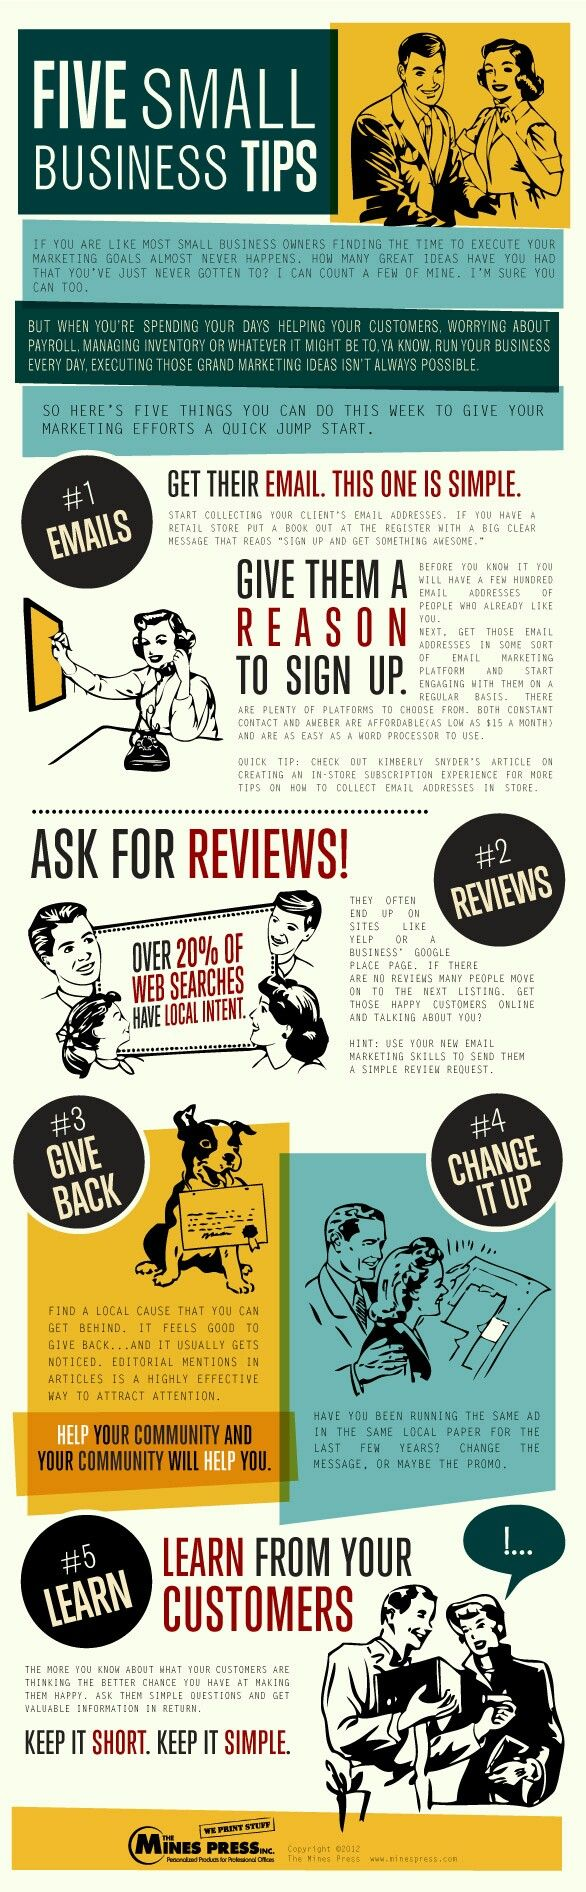 31. Applied Anthropology/tips Applying these tips will help run a business. See how I broke free from the Matrix for good at http://pinterest.corbintel.com